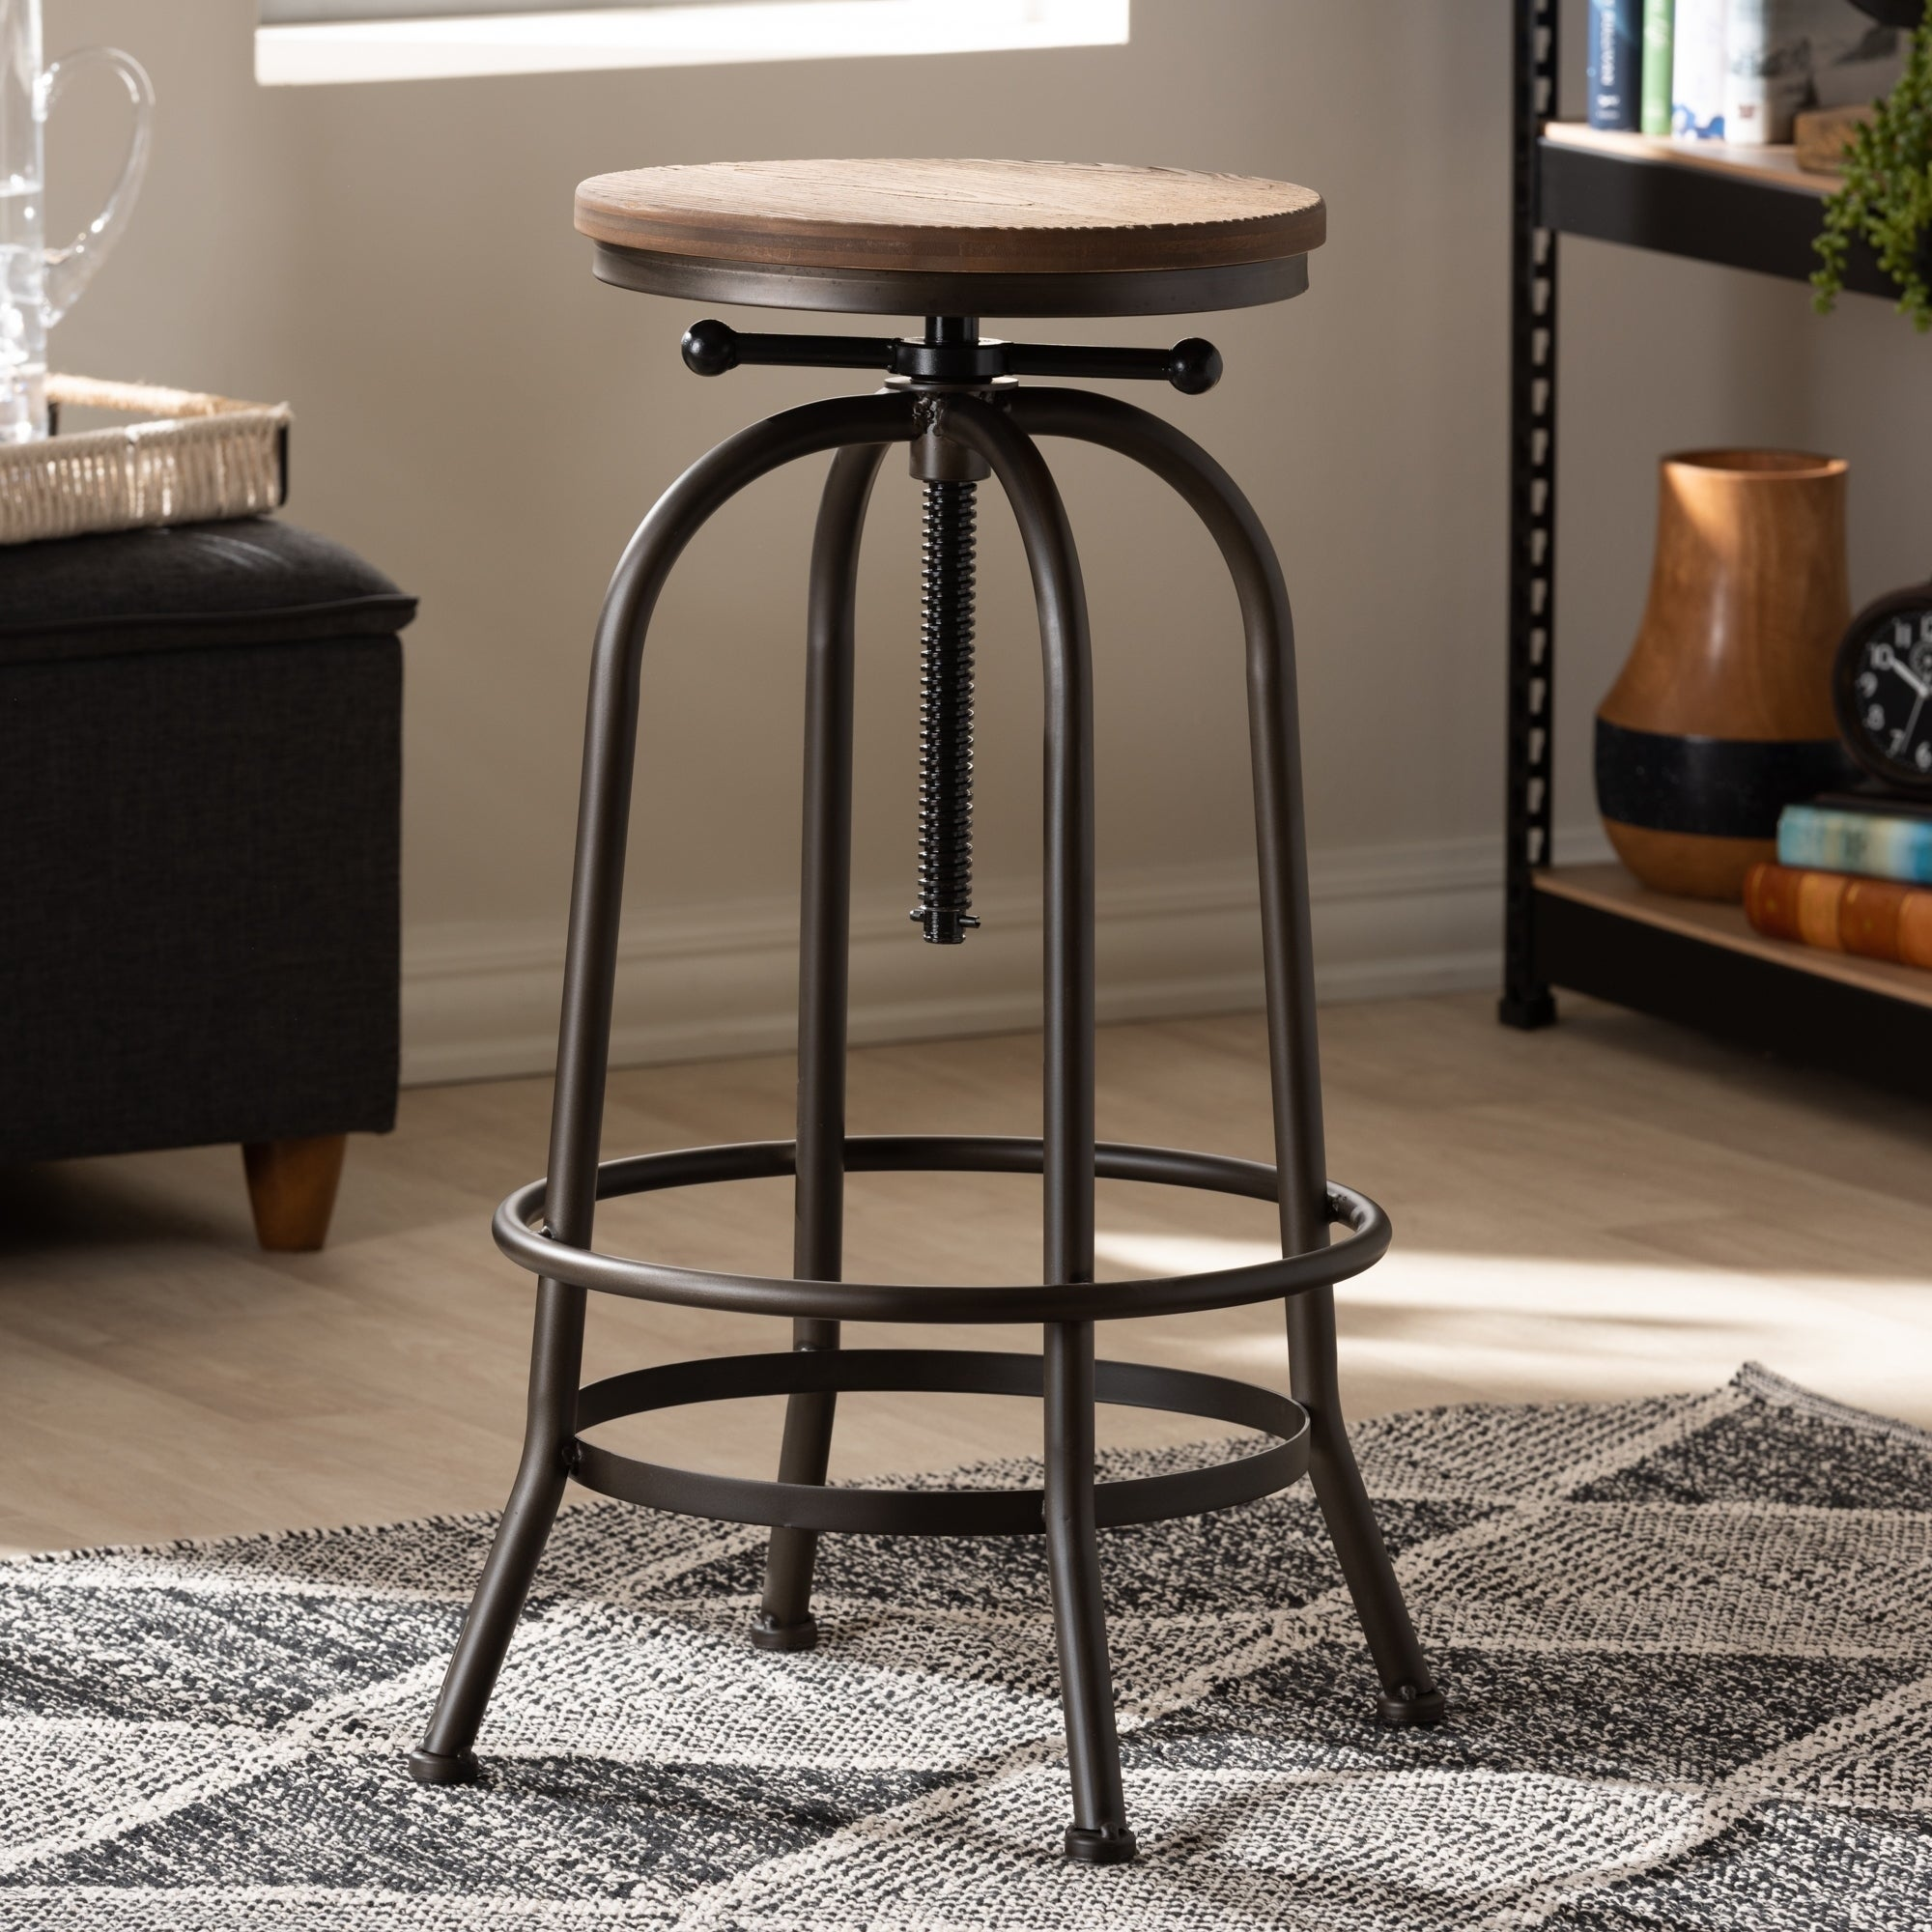 Surprising Industrial Rust Finished Adjustable Swivel Bar Stool By Baxton Studio Pabps2019 Chair Design Images Pabps2019Com